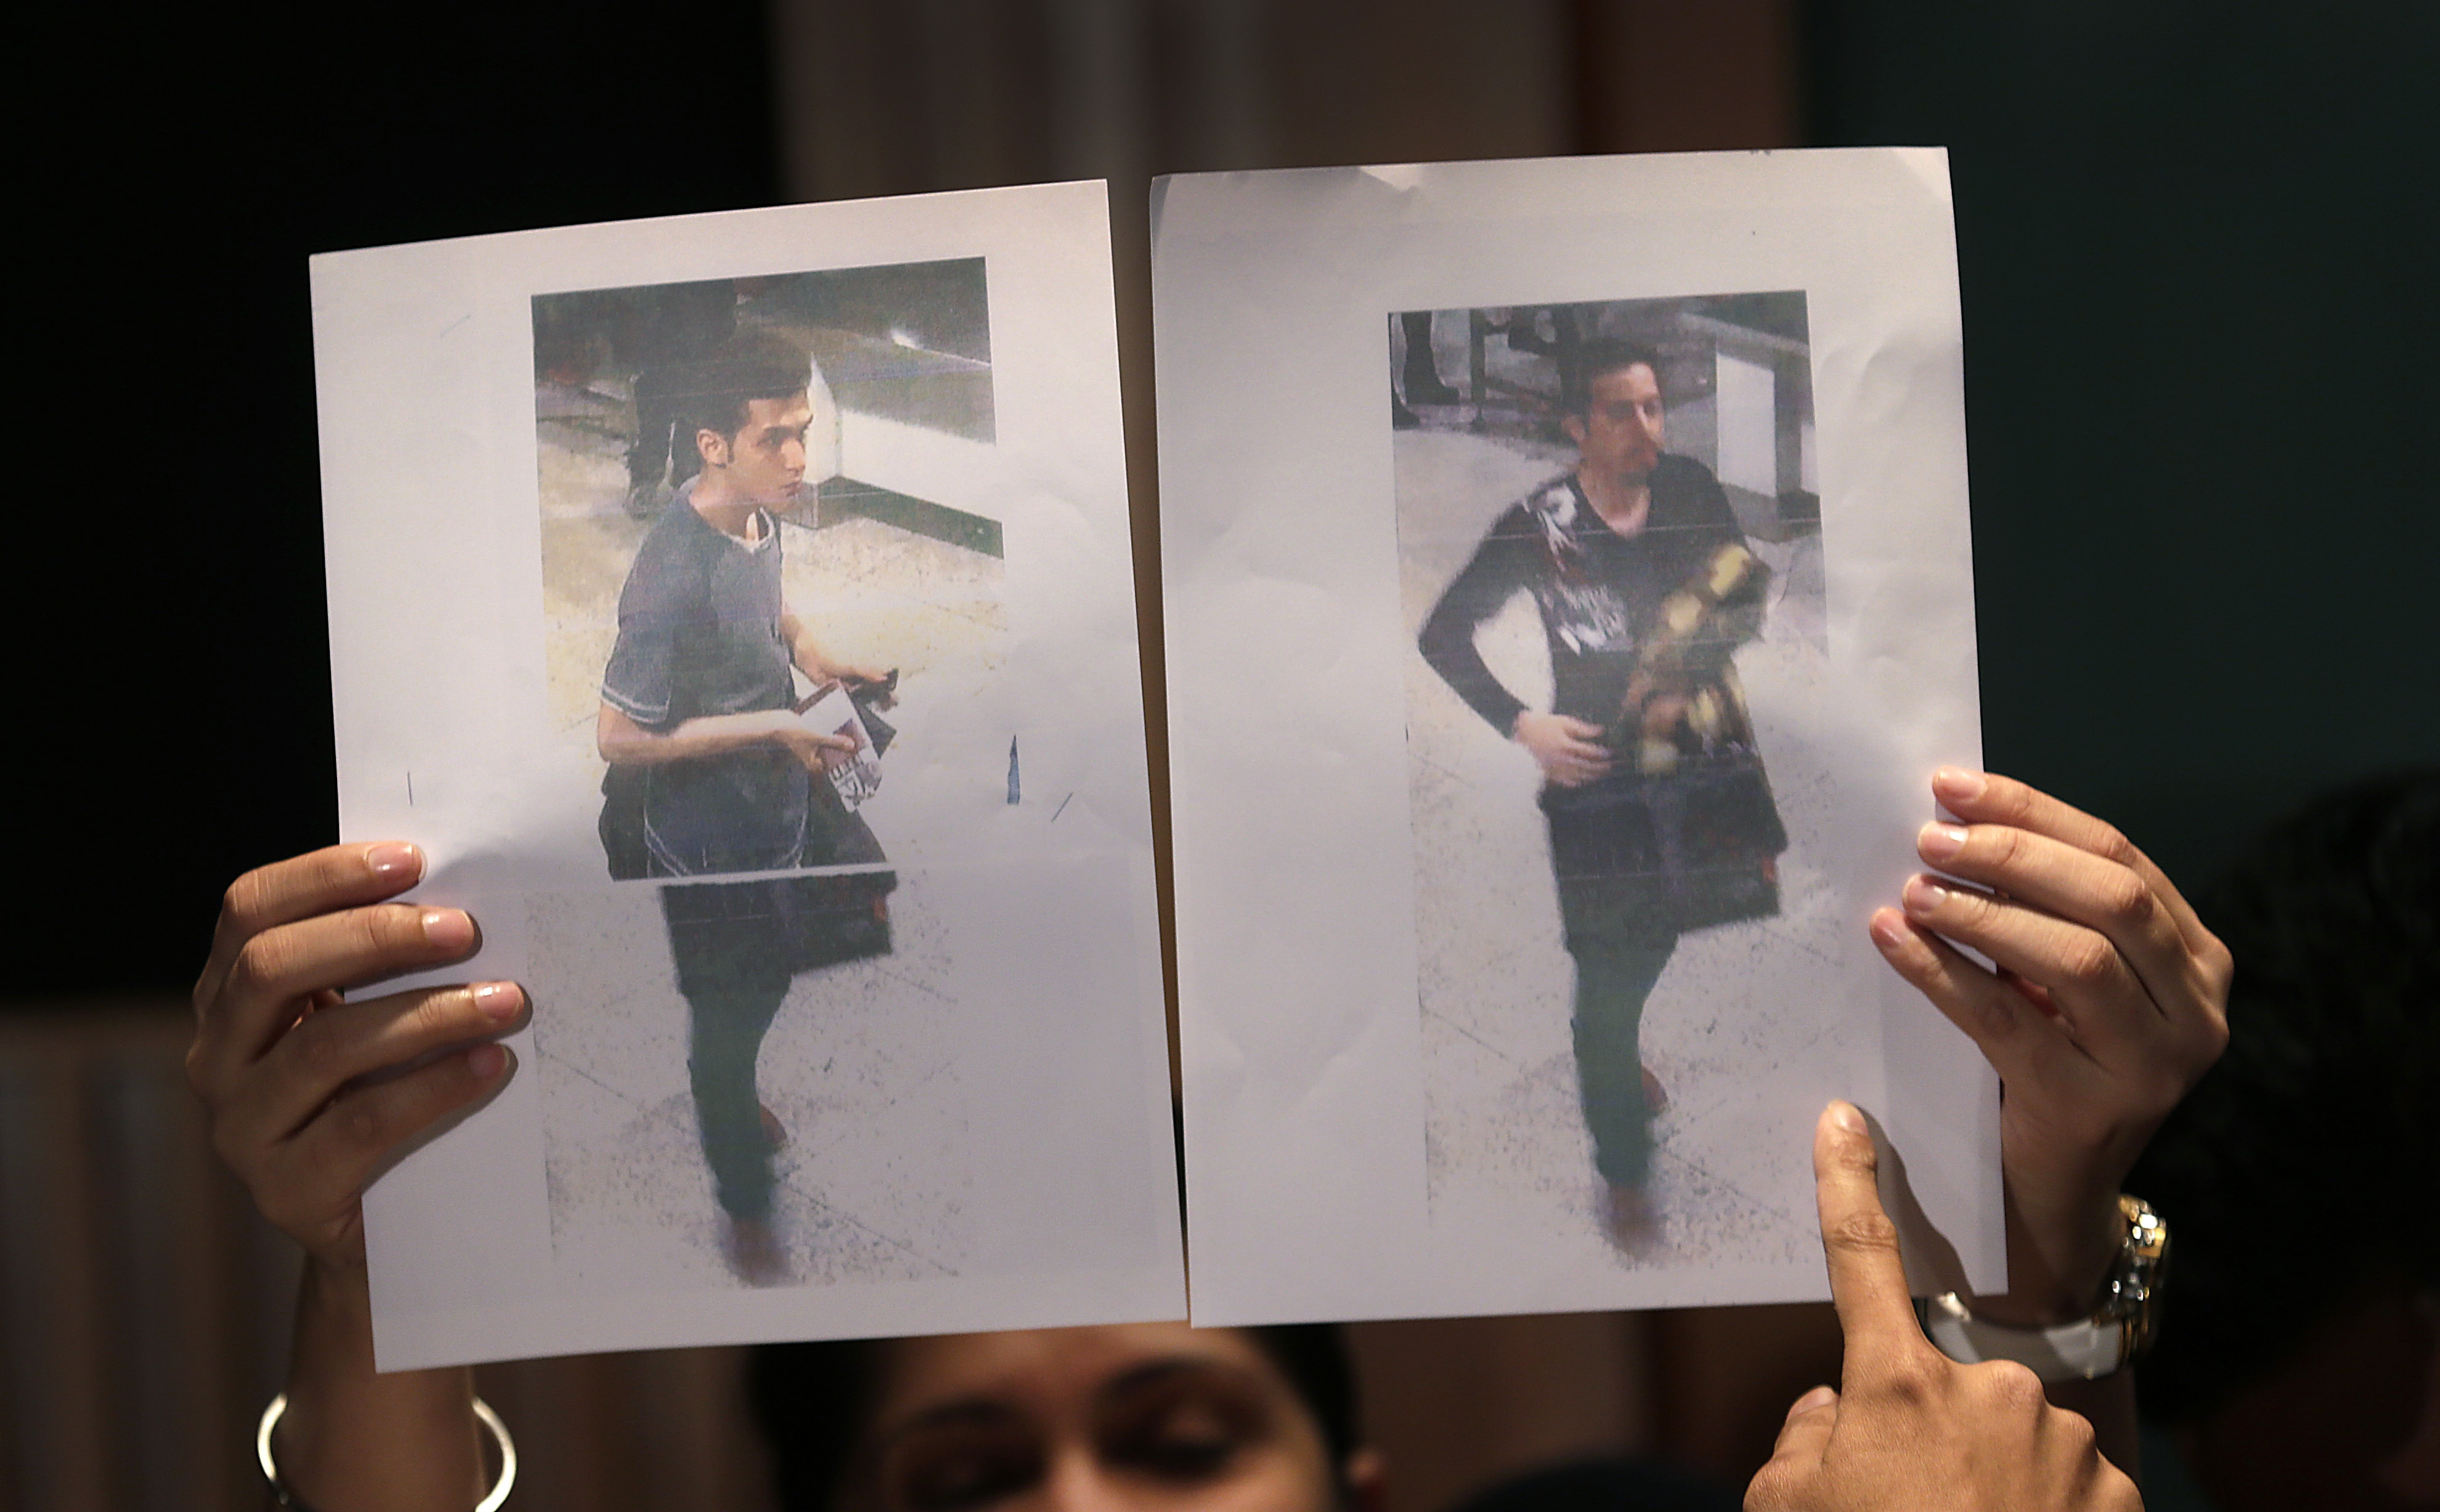 These two passengers on the lost Malaysian Airlines flight were using stolen passports, sparking fears of terrorism. A simple check of the passport database would have barred them from the flight. (AP photo)